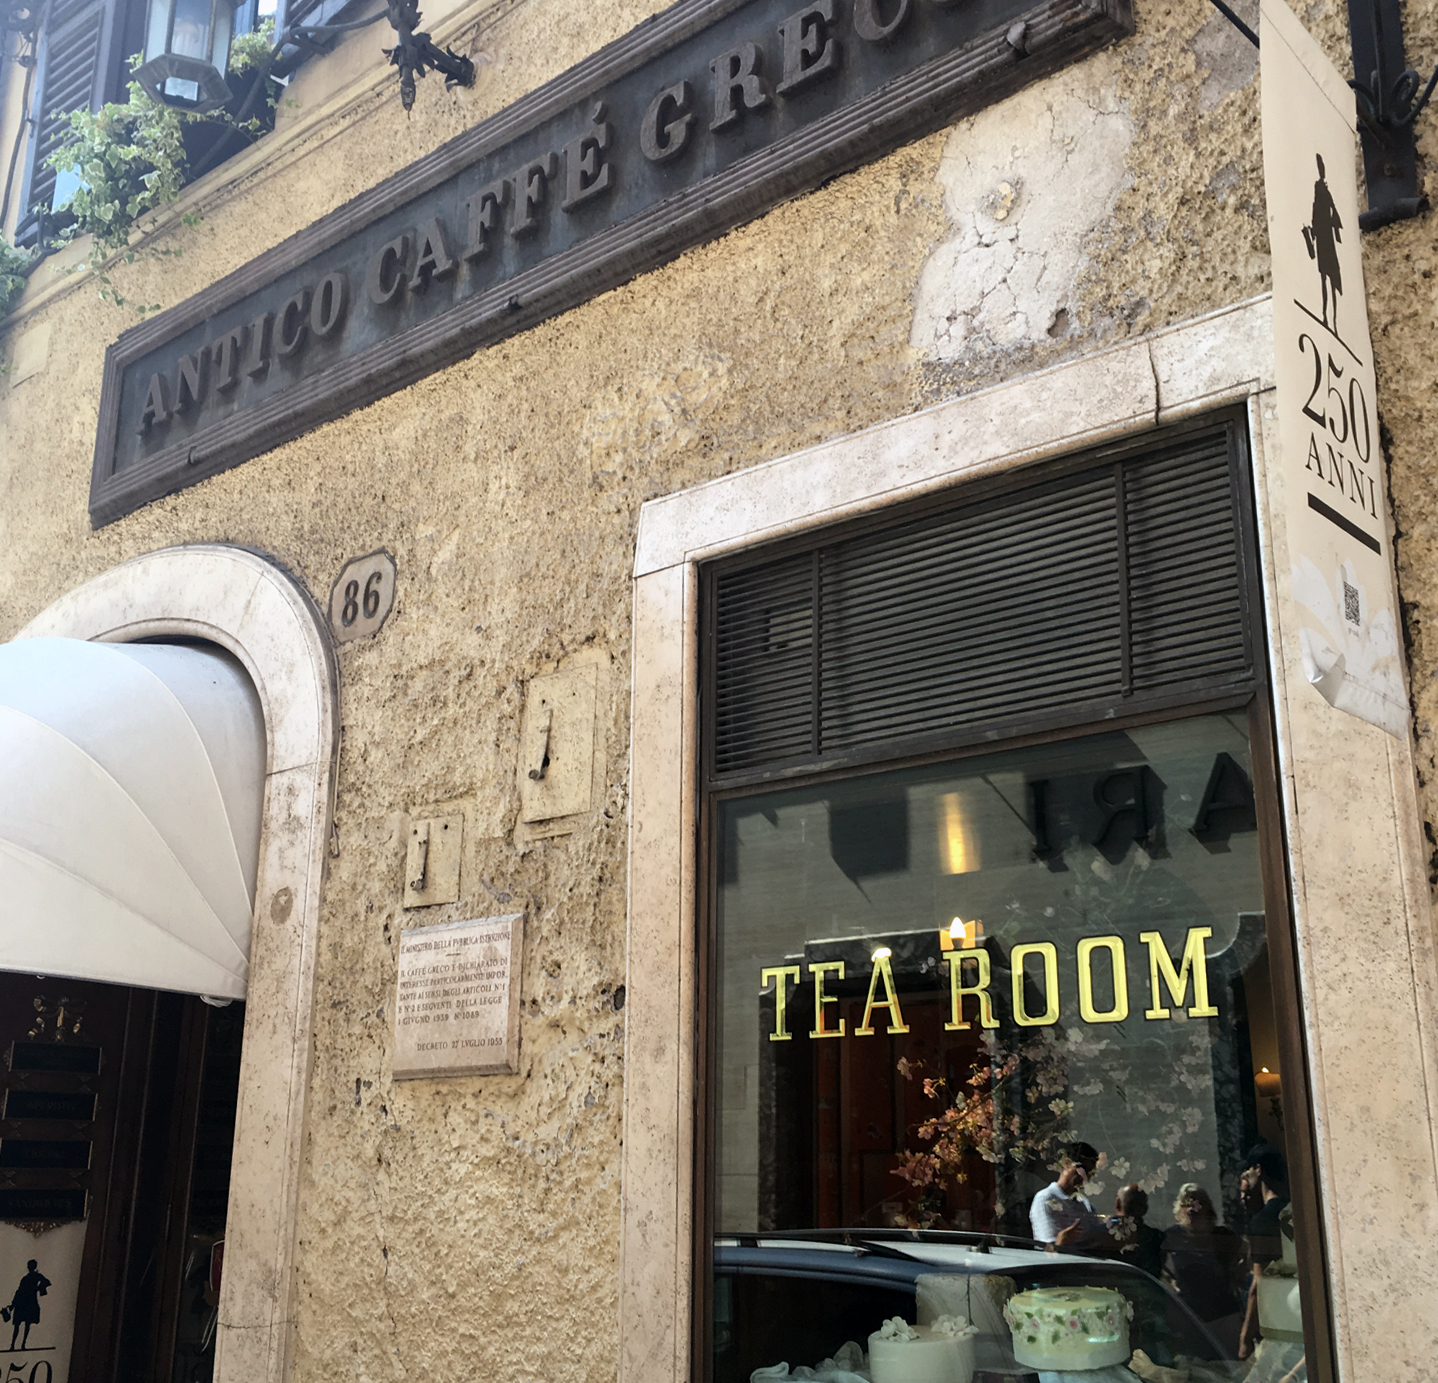 The entrance to Caffé Greco, the oldest café in Rome.